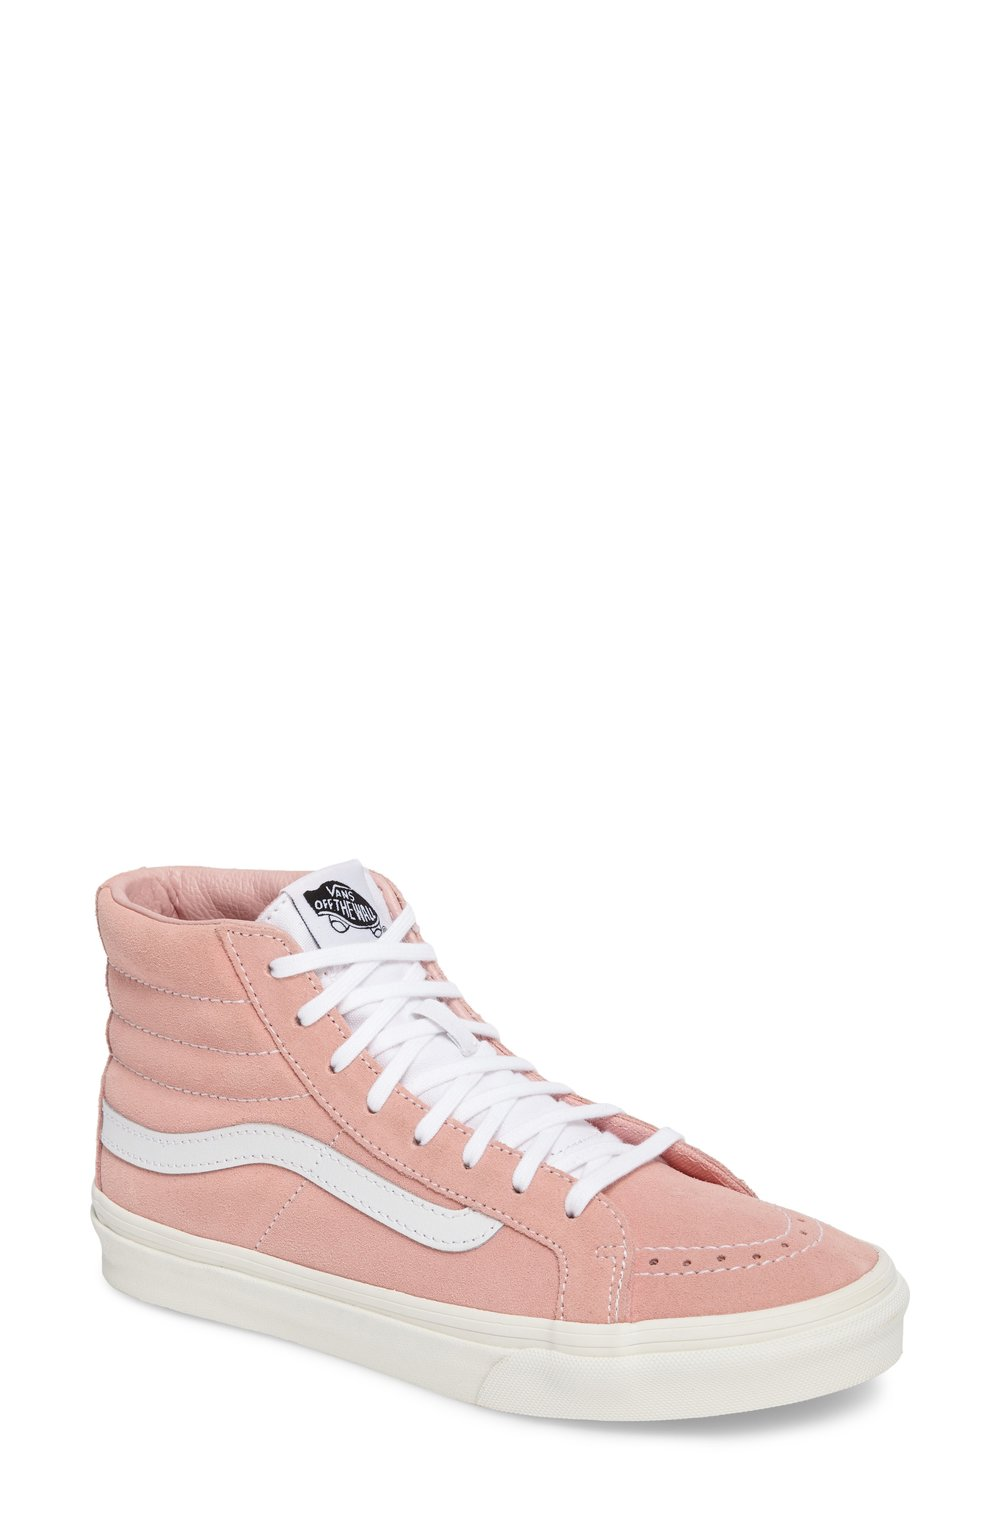 vans pink high top sneakers